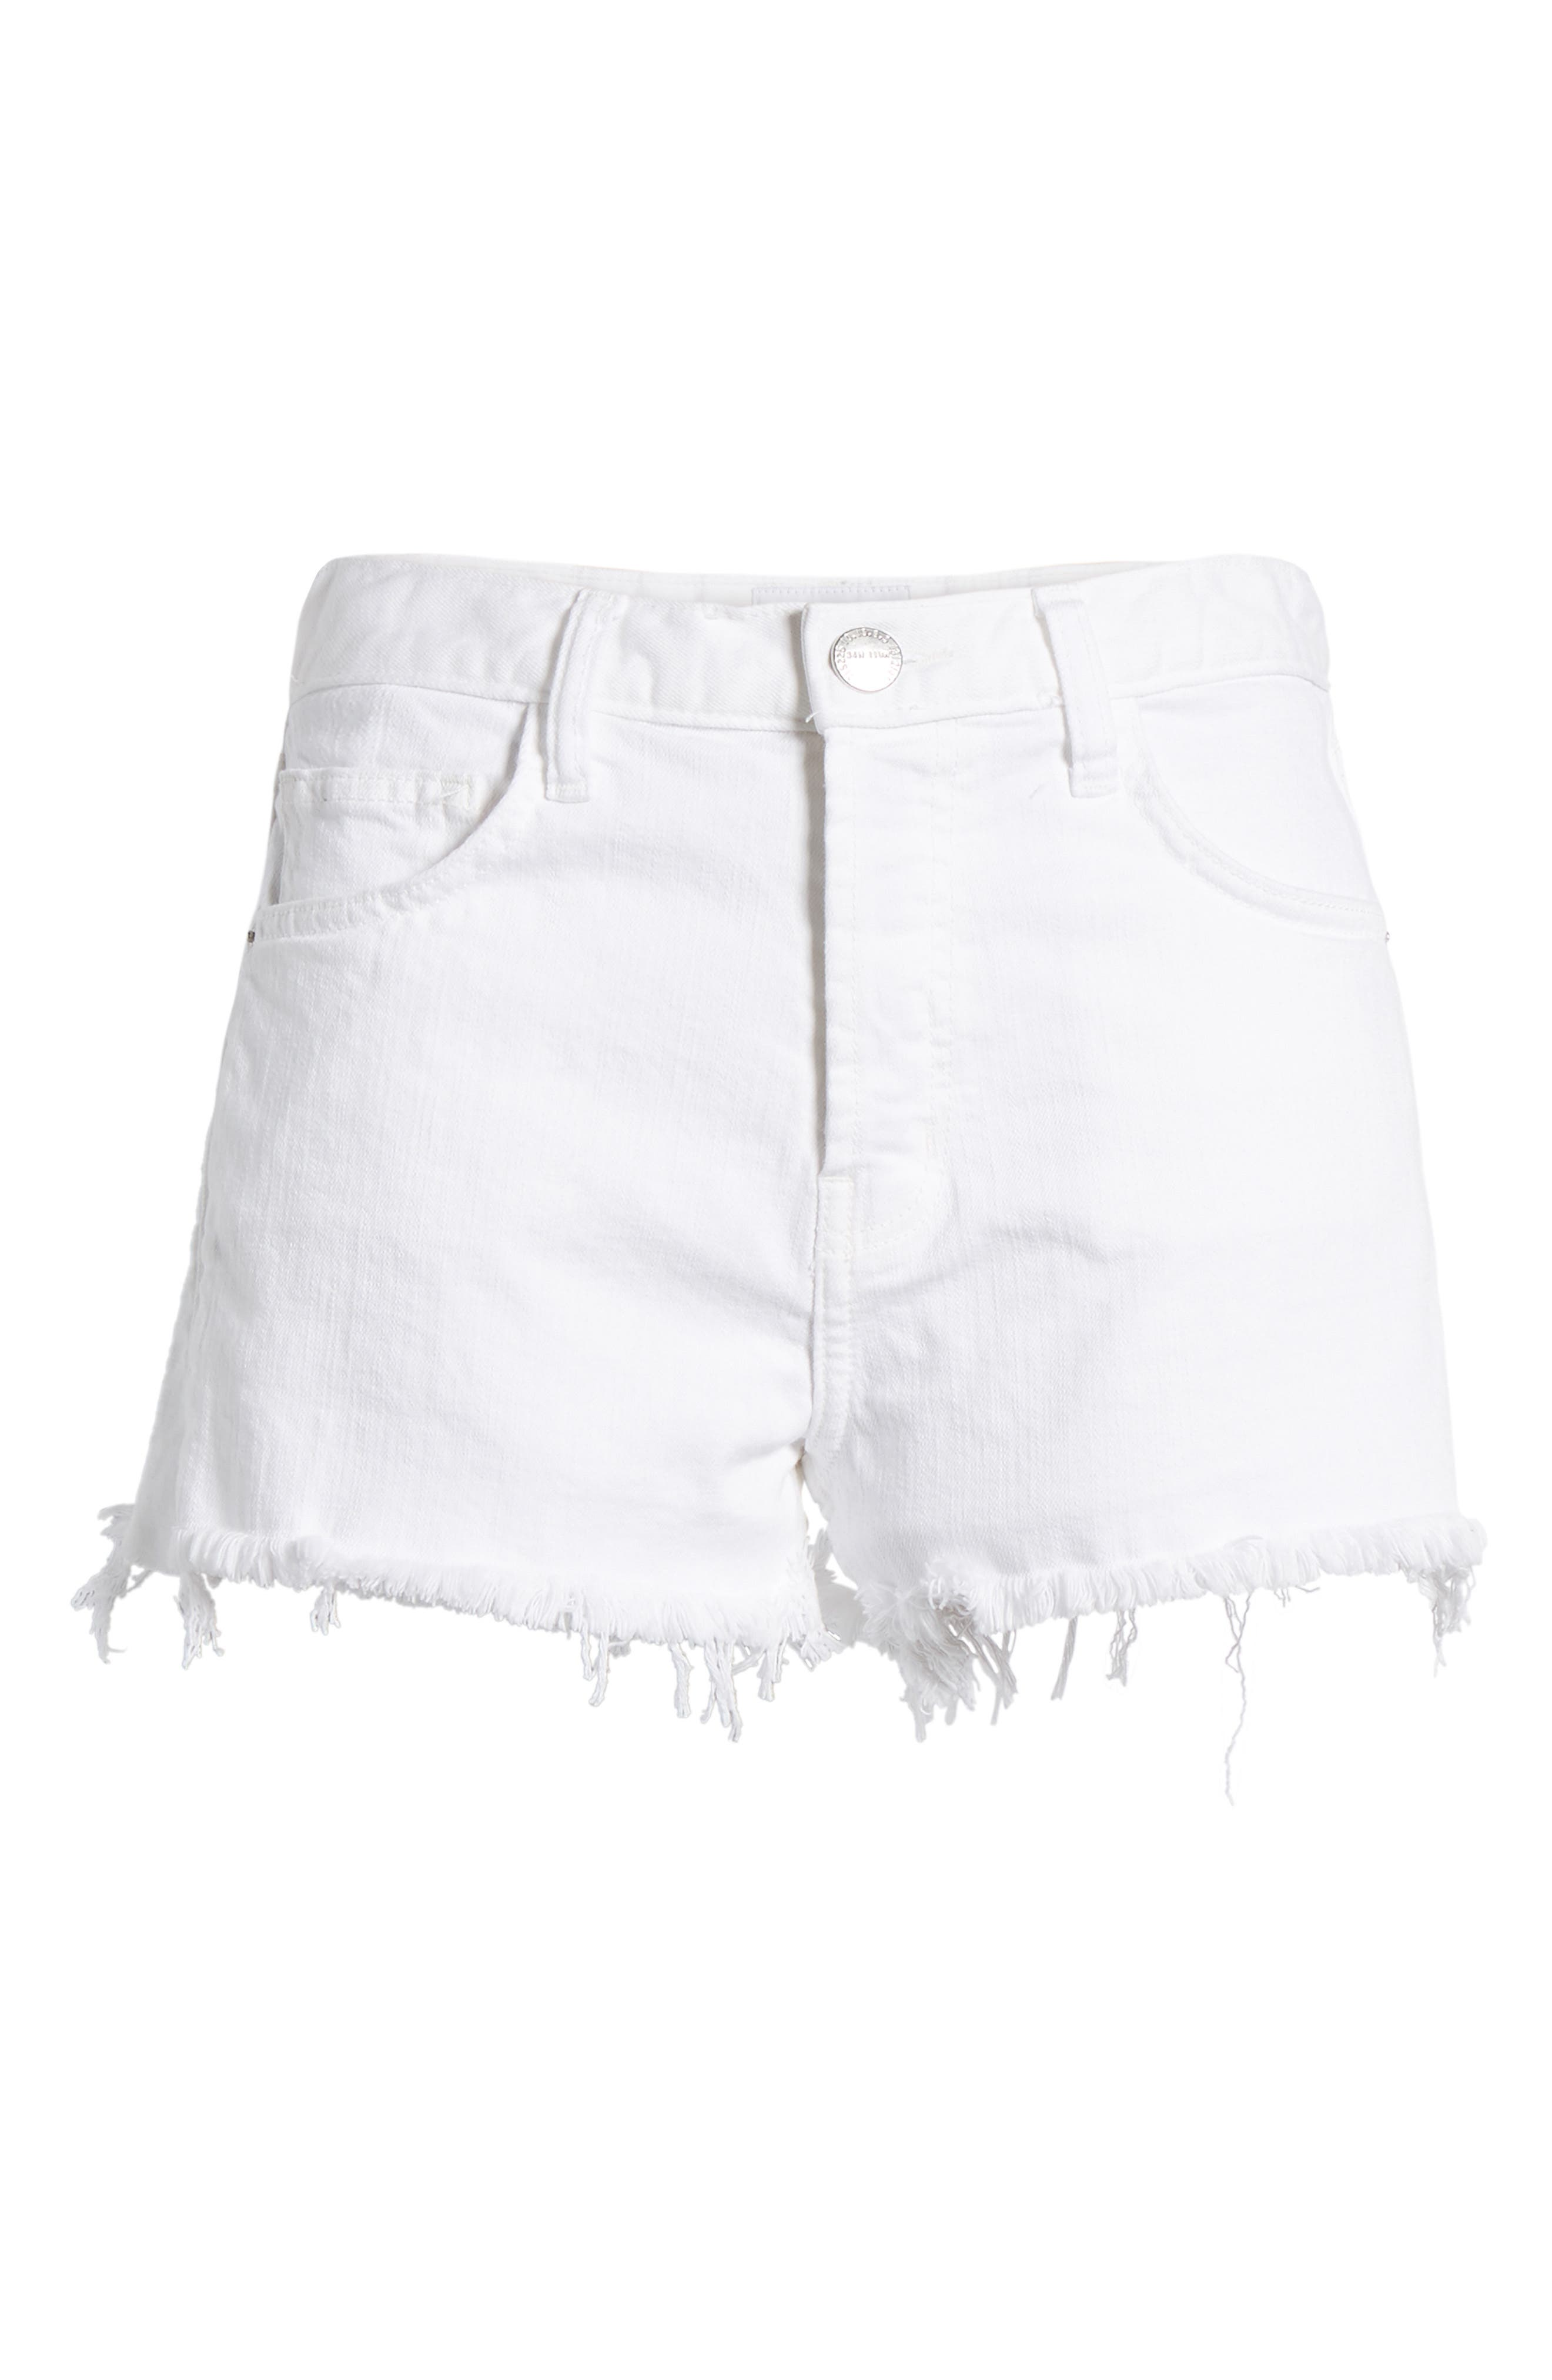 The Ultra High Waist Cutoff Denim Shorts,                             Alternate thumbnail 7, color,                             Sugar W/ Mishap Hem